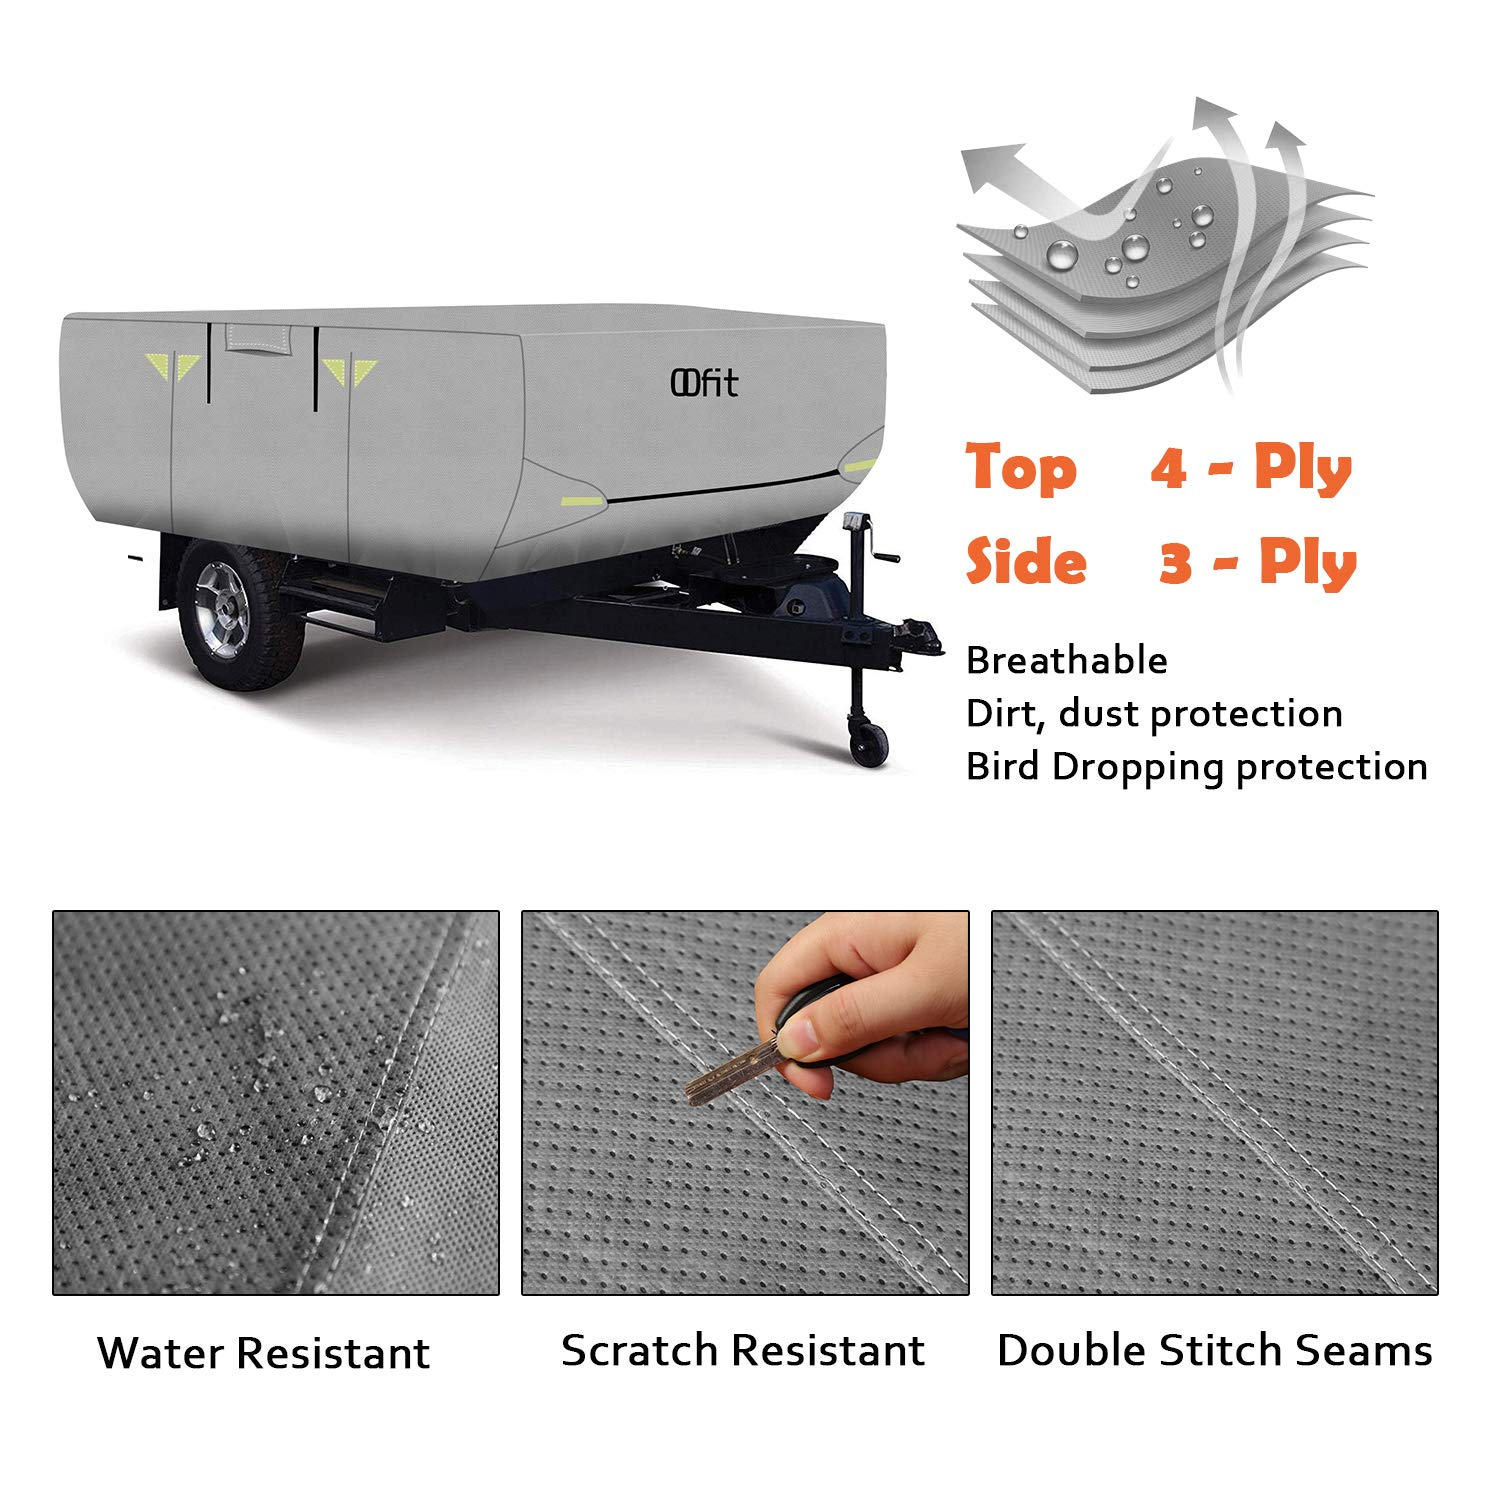 OOFIT 4 Layers Pop-up Camper Cover 12' – 14' Rip-Stop Anti-UV Folding Camper Trailer RV Cover with Adhesive Repair Patch by OOFIT (Image #3)